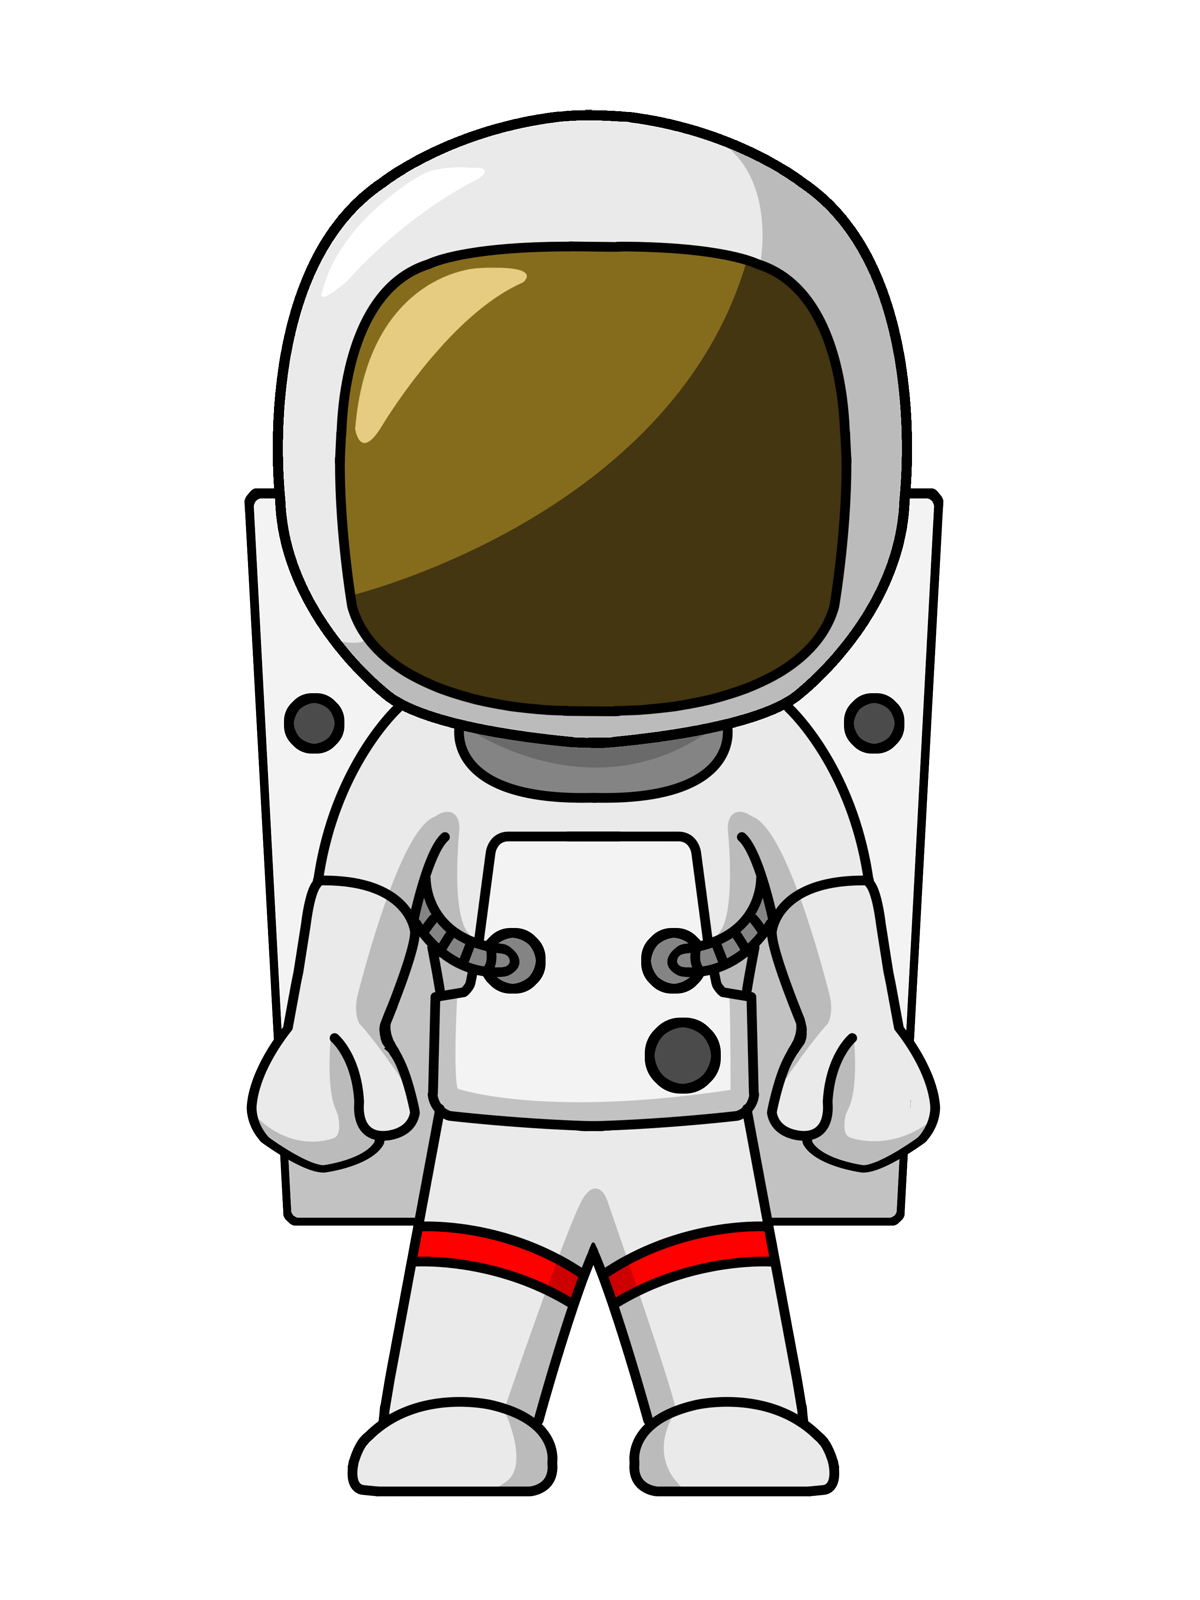 Spaceman shuttle clipart jpg transparent download Astronaut Clip Art Images Free For Commercial Use | 3D print ideas ... jpg transparent download